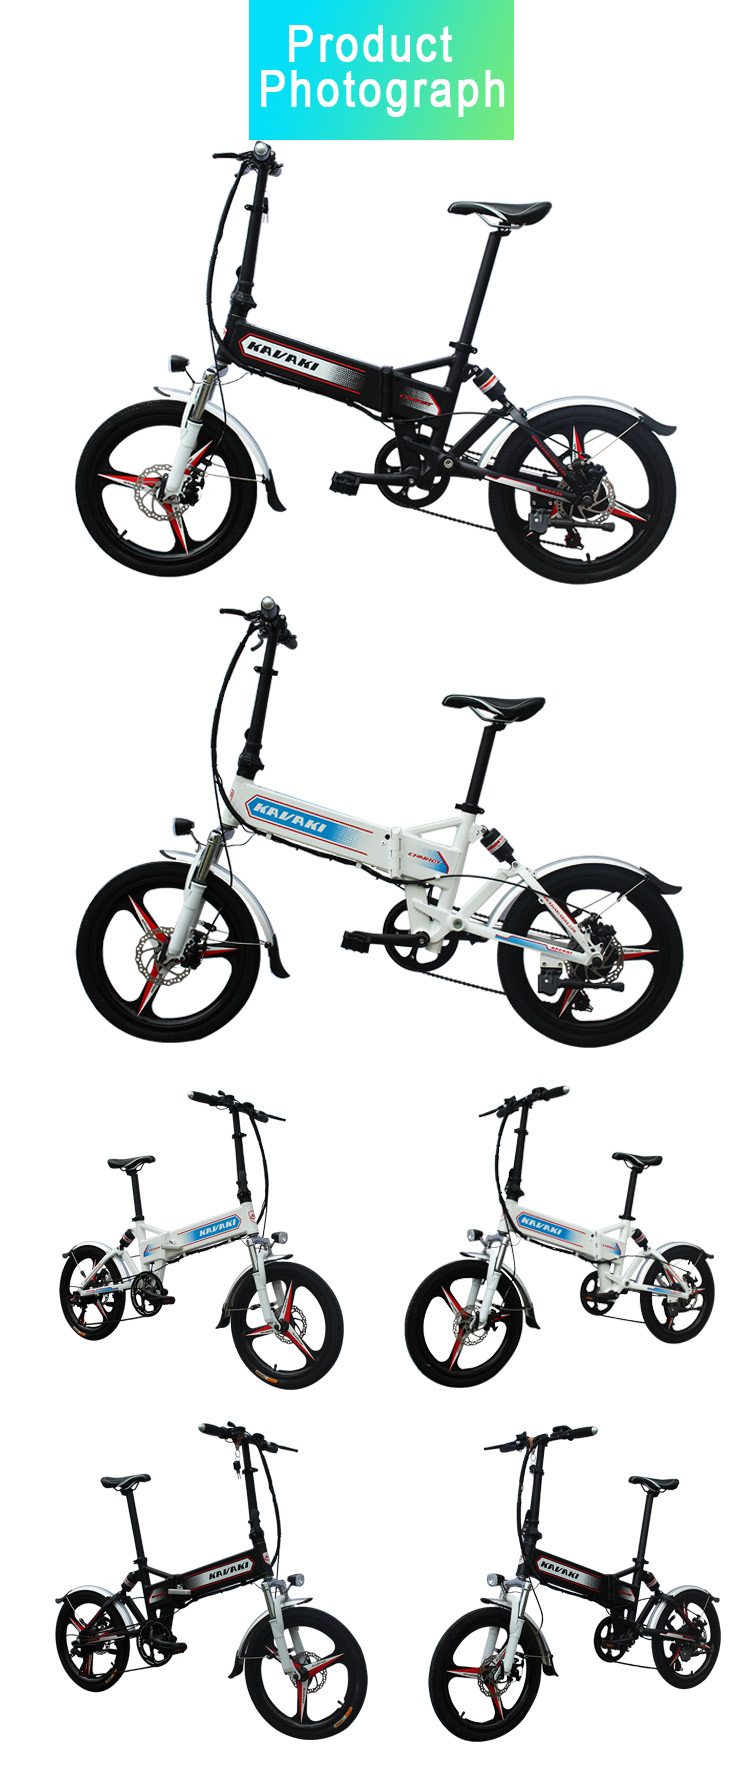 Guangzhou Factory fashion design Pedal 20 inch tyre folding alloy wheel disc brake 48V20Ah electric city E-bike